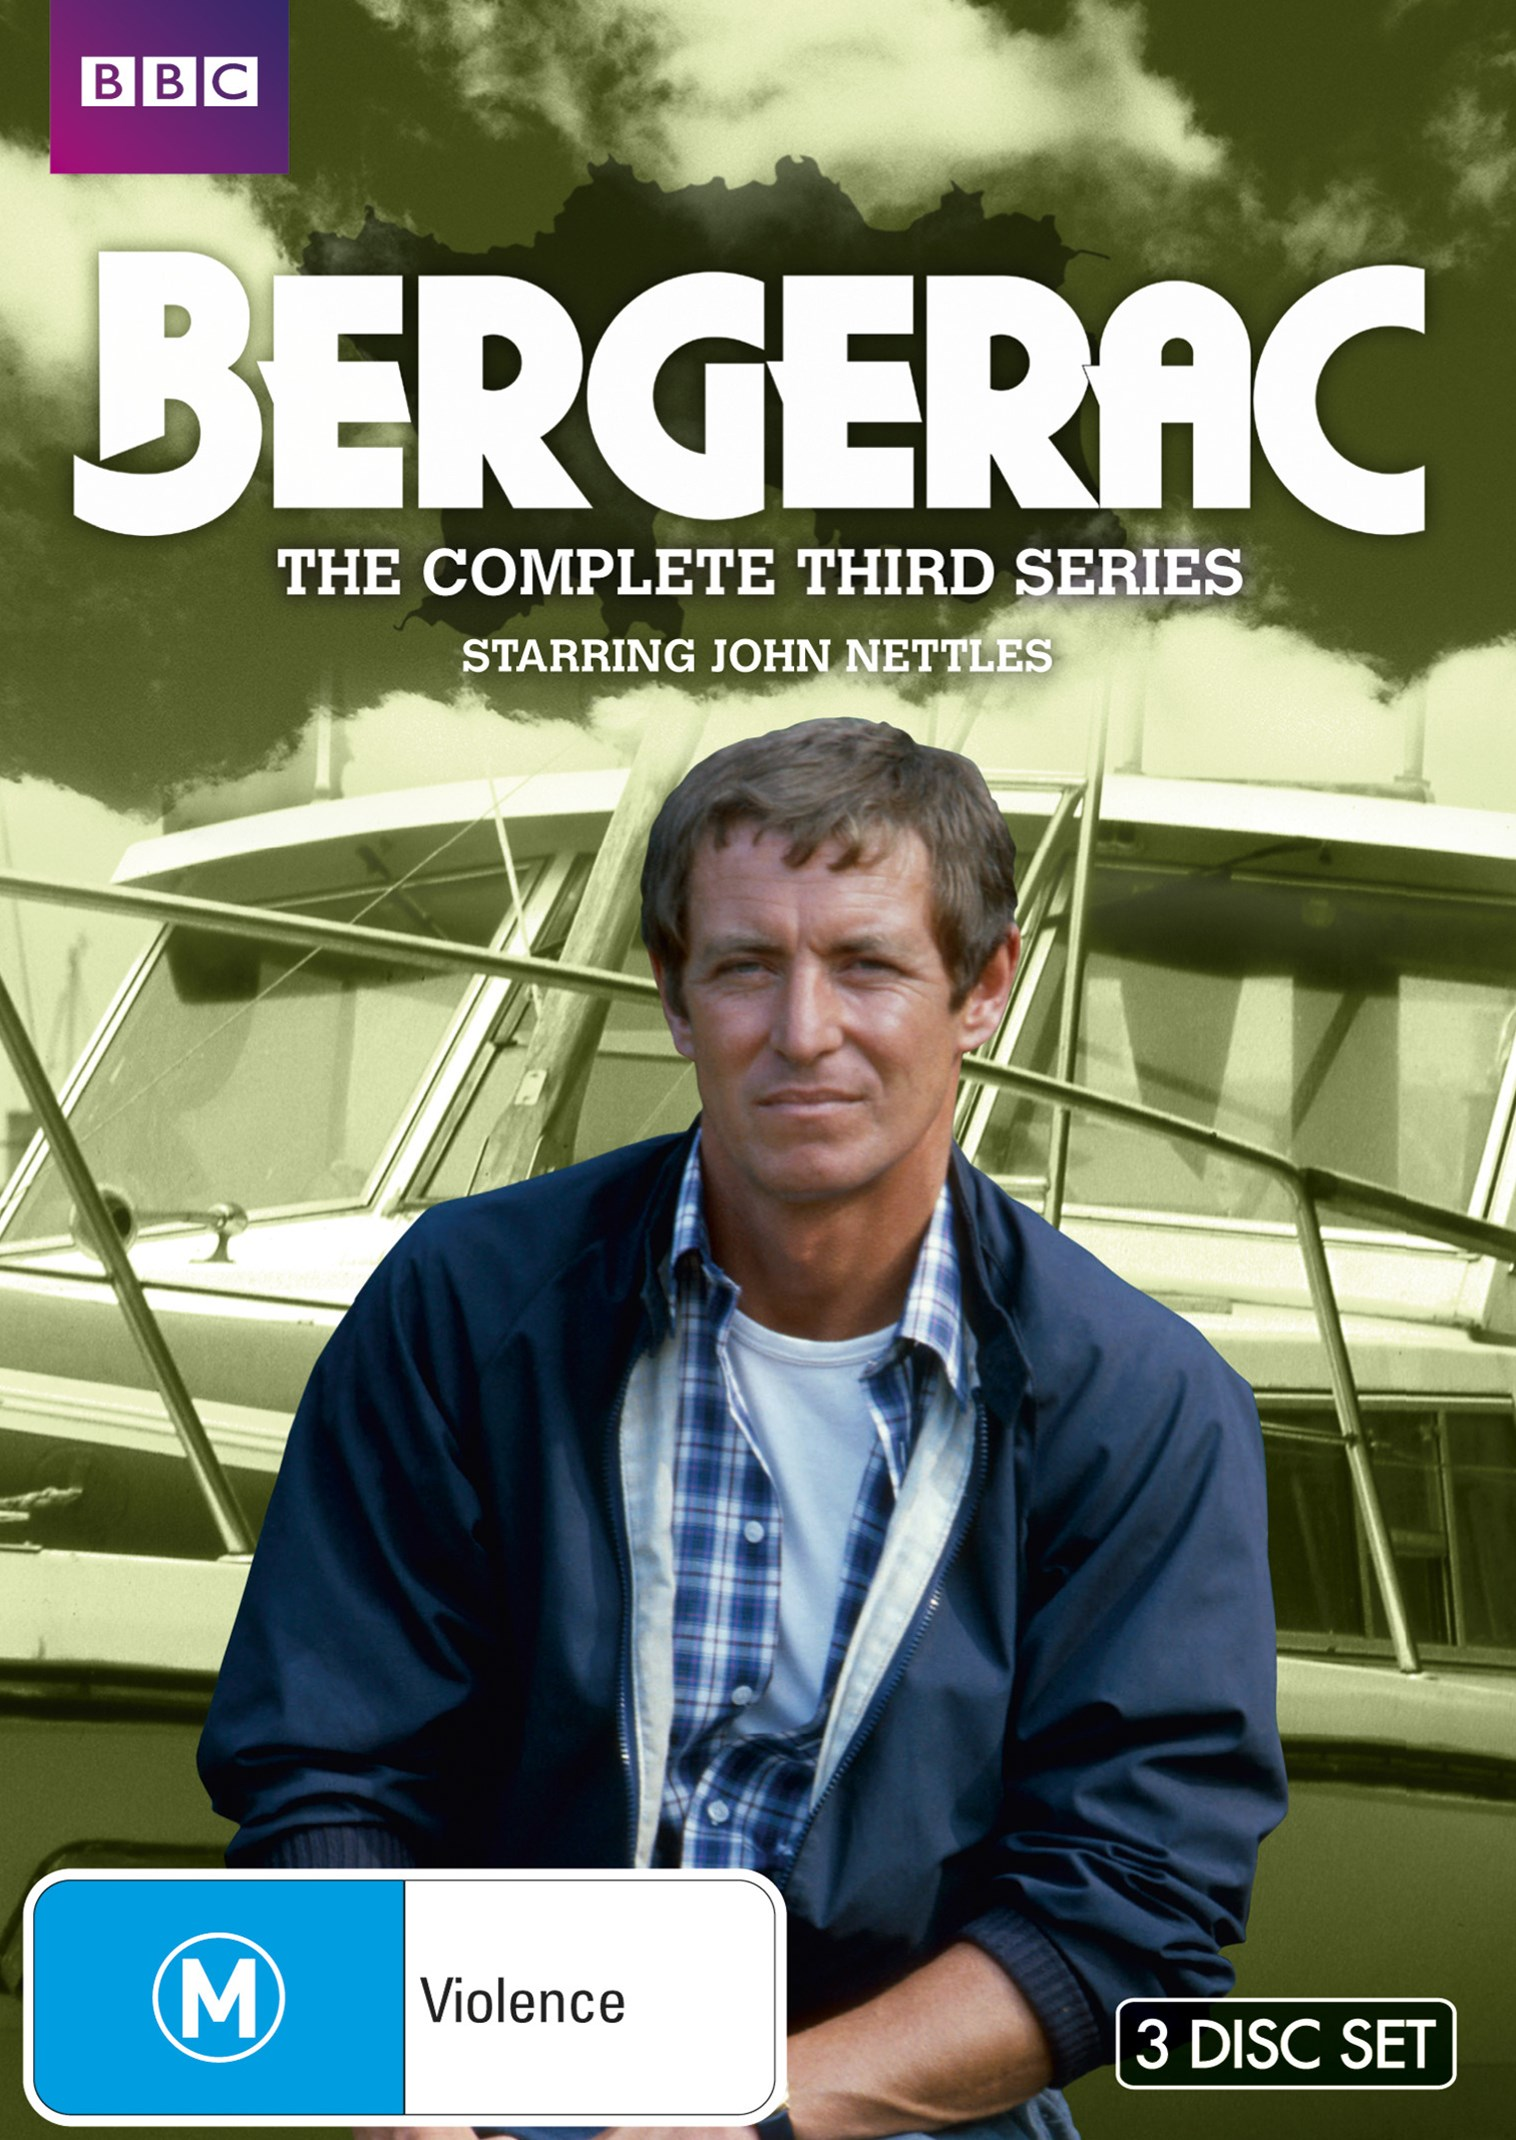 Bergerac - The Complete Third Series